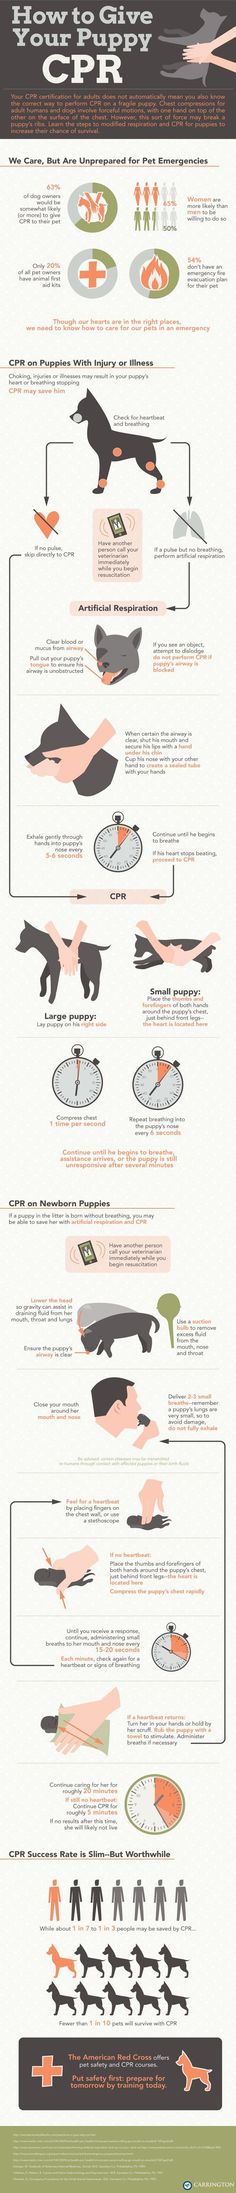 30 Infographics that can Save Your Pet /// Pet Safety Tips + Free Printable Pet Emergency Sticker - The Cottage Market